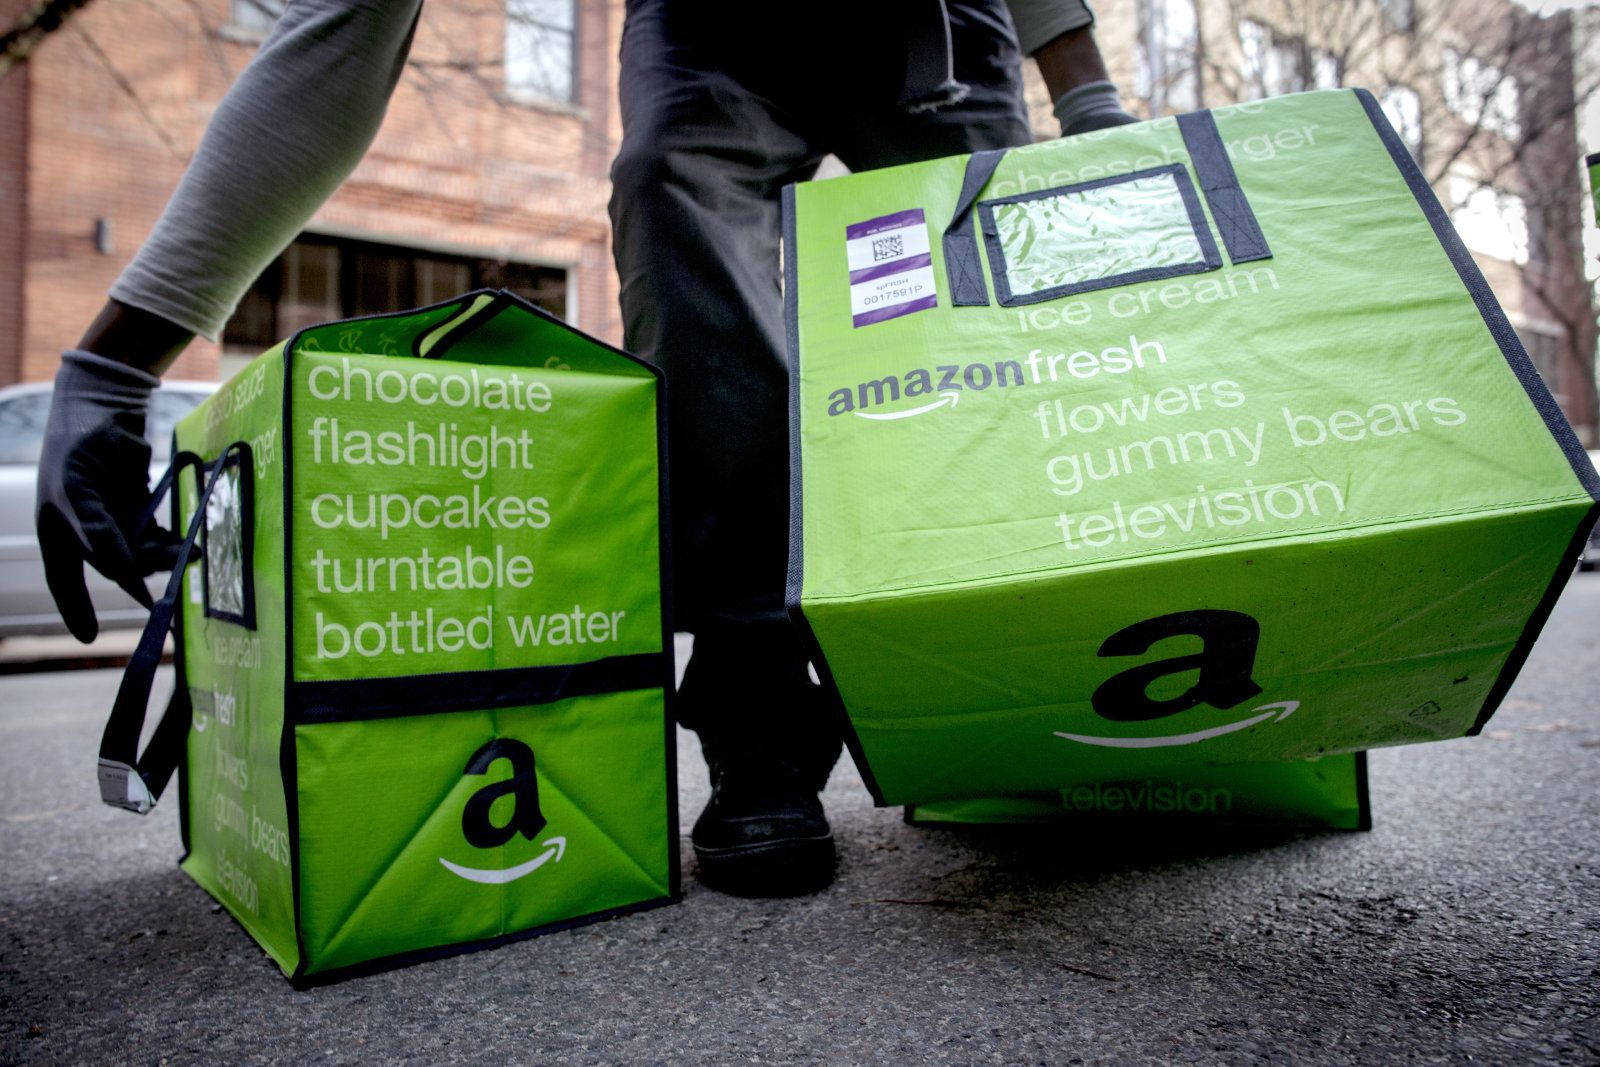 Amazon S Grocery Deliveries Now Cover 190 London Postcodes Uk Supermarkets Amazon Grocery Grocery Services